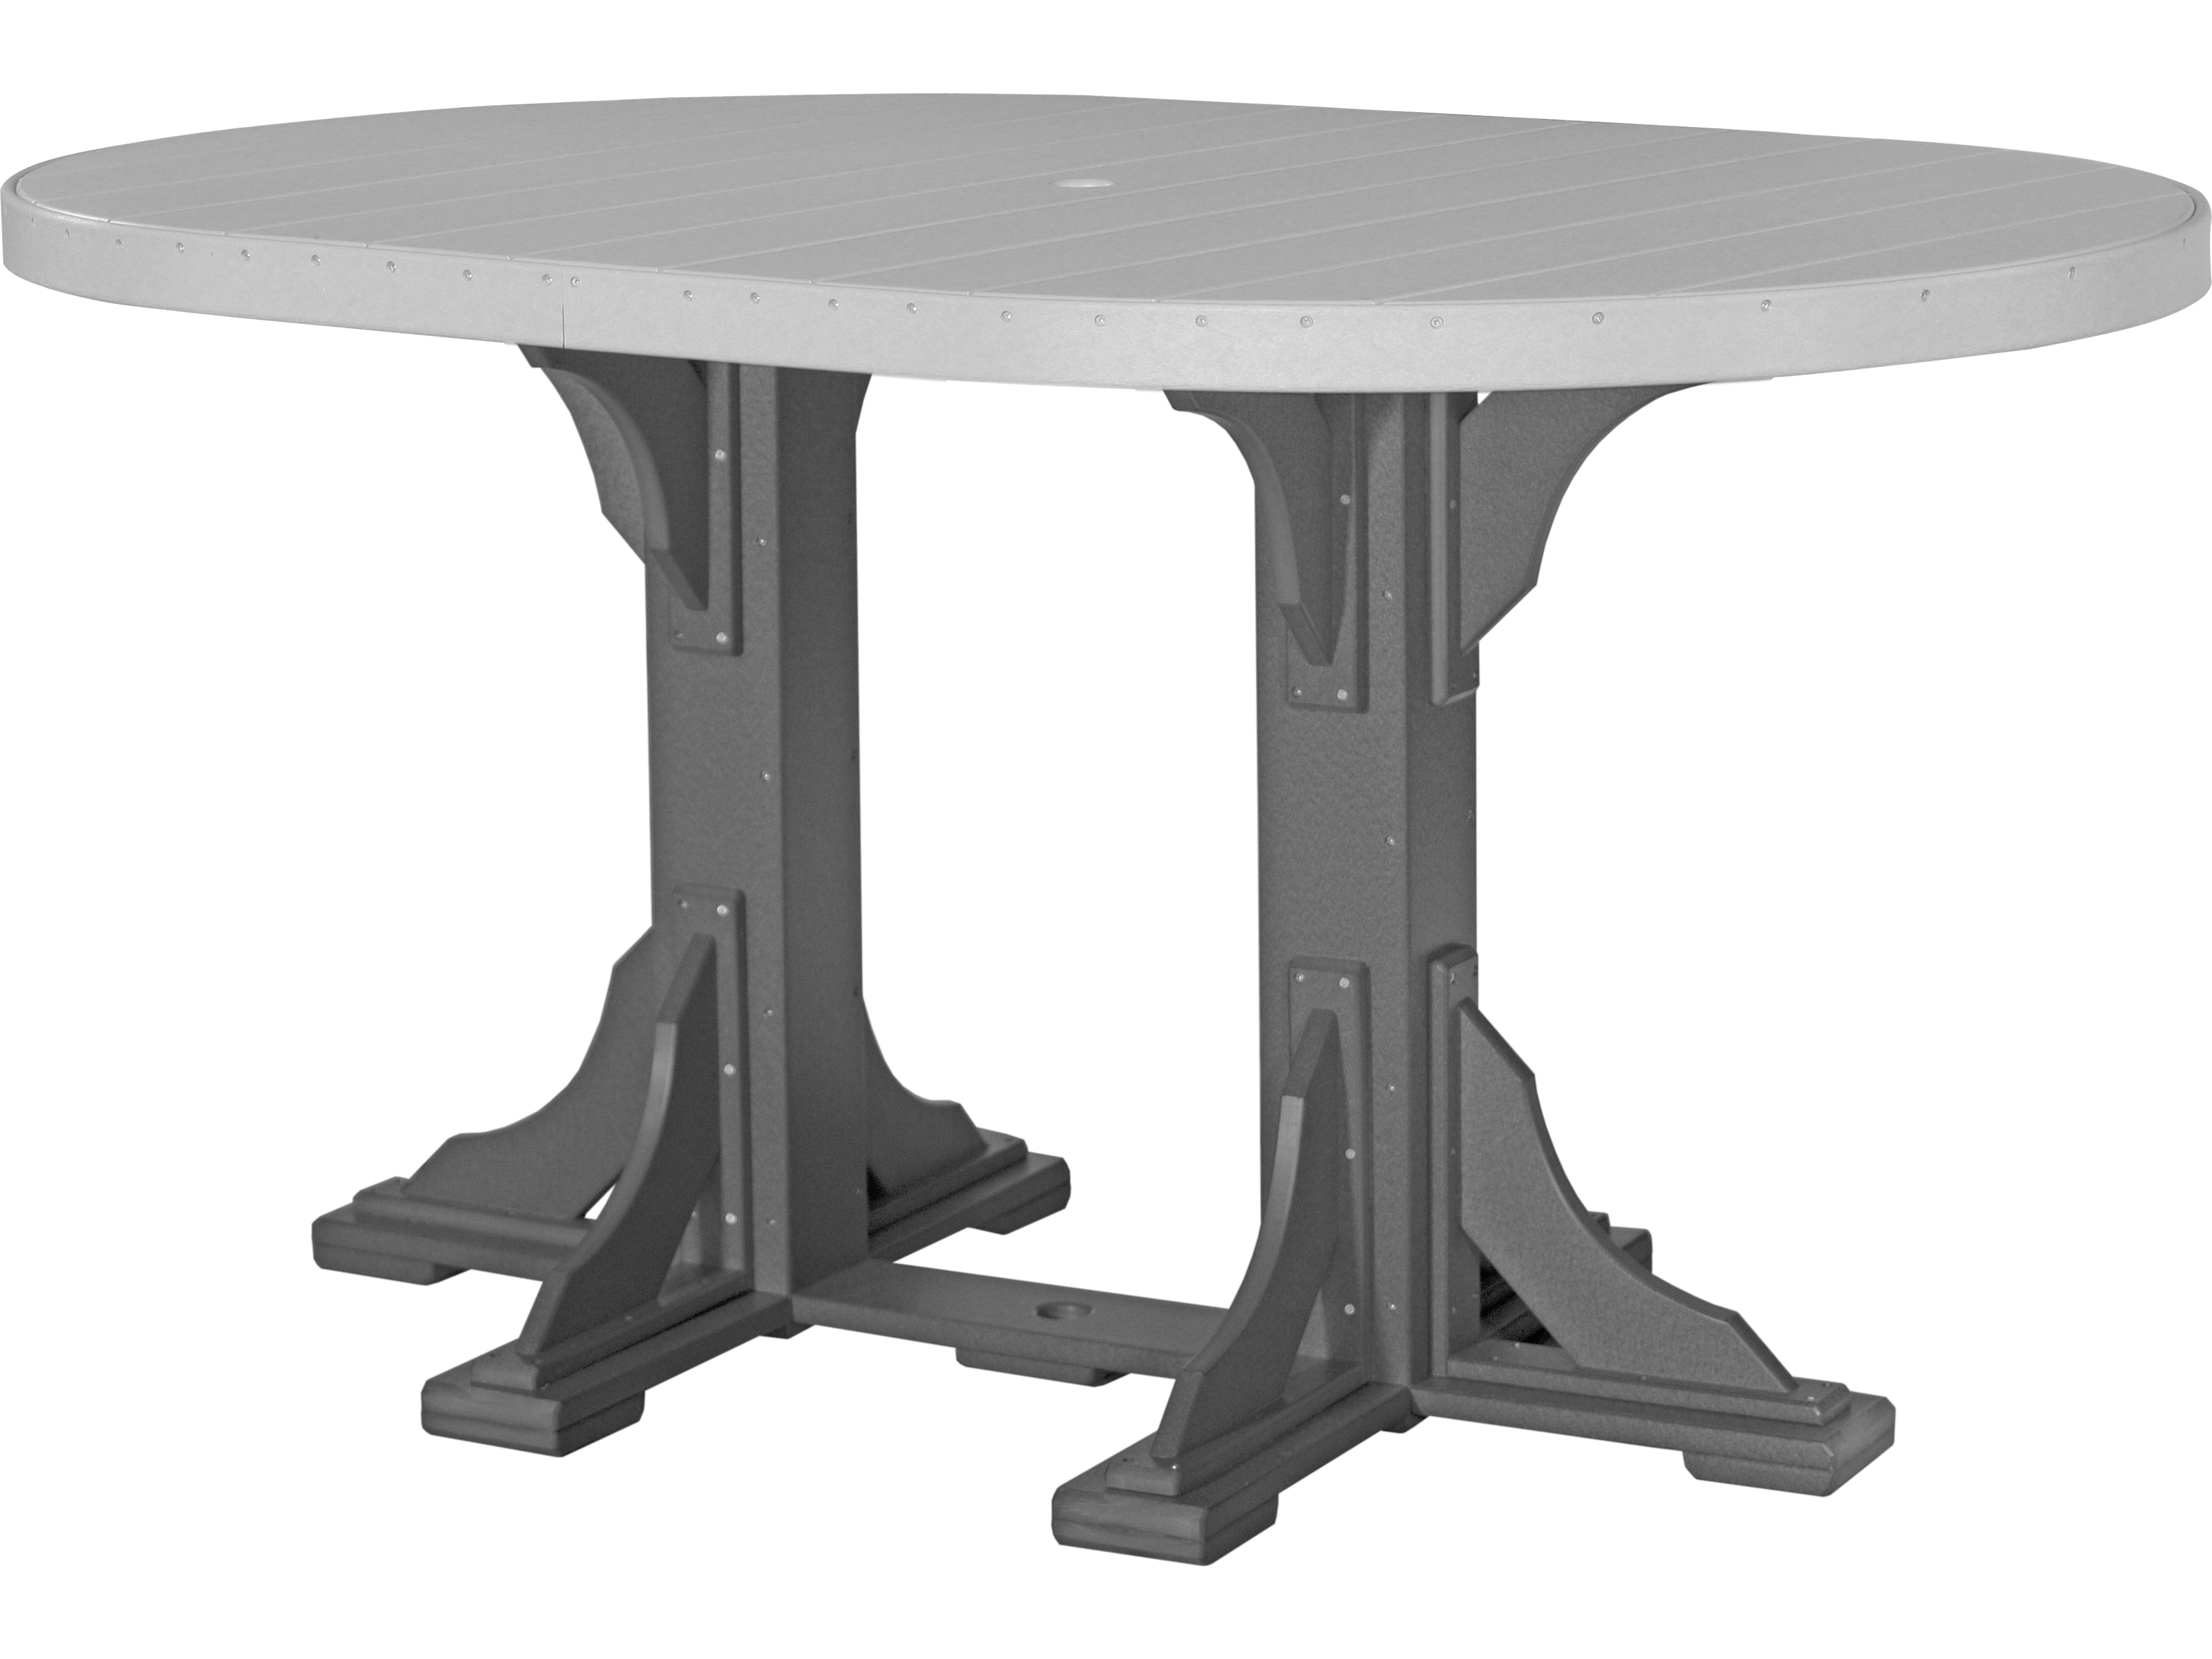 Luxcraft Recycled Plastic 72 X 48 Oval Bar Height Table With Umbrella Hole P46ot Bar